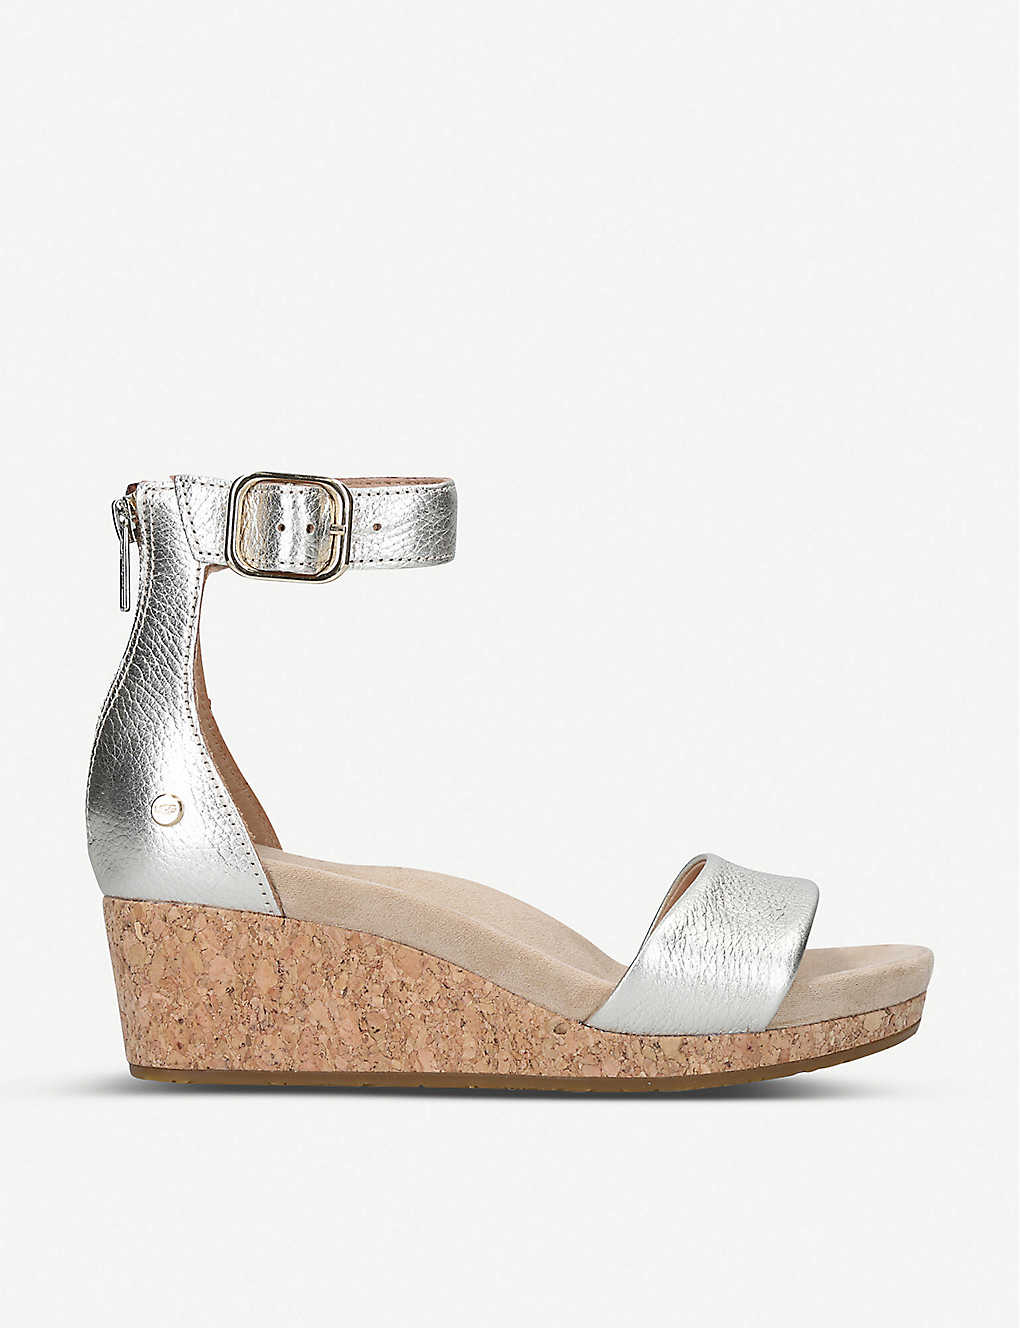 UGG: Zoe leather wedge sandals